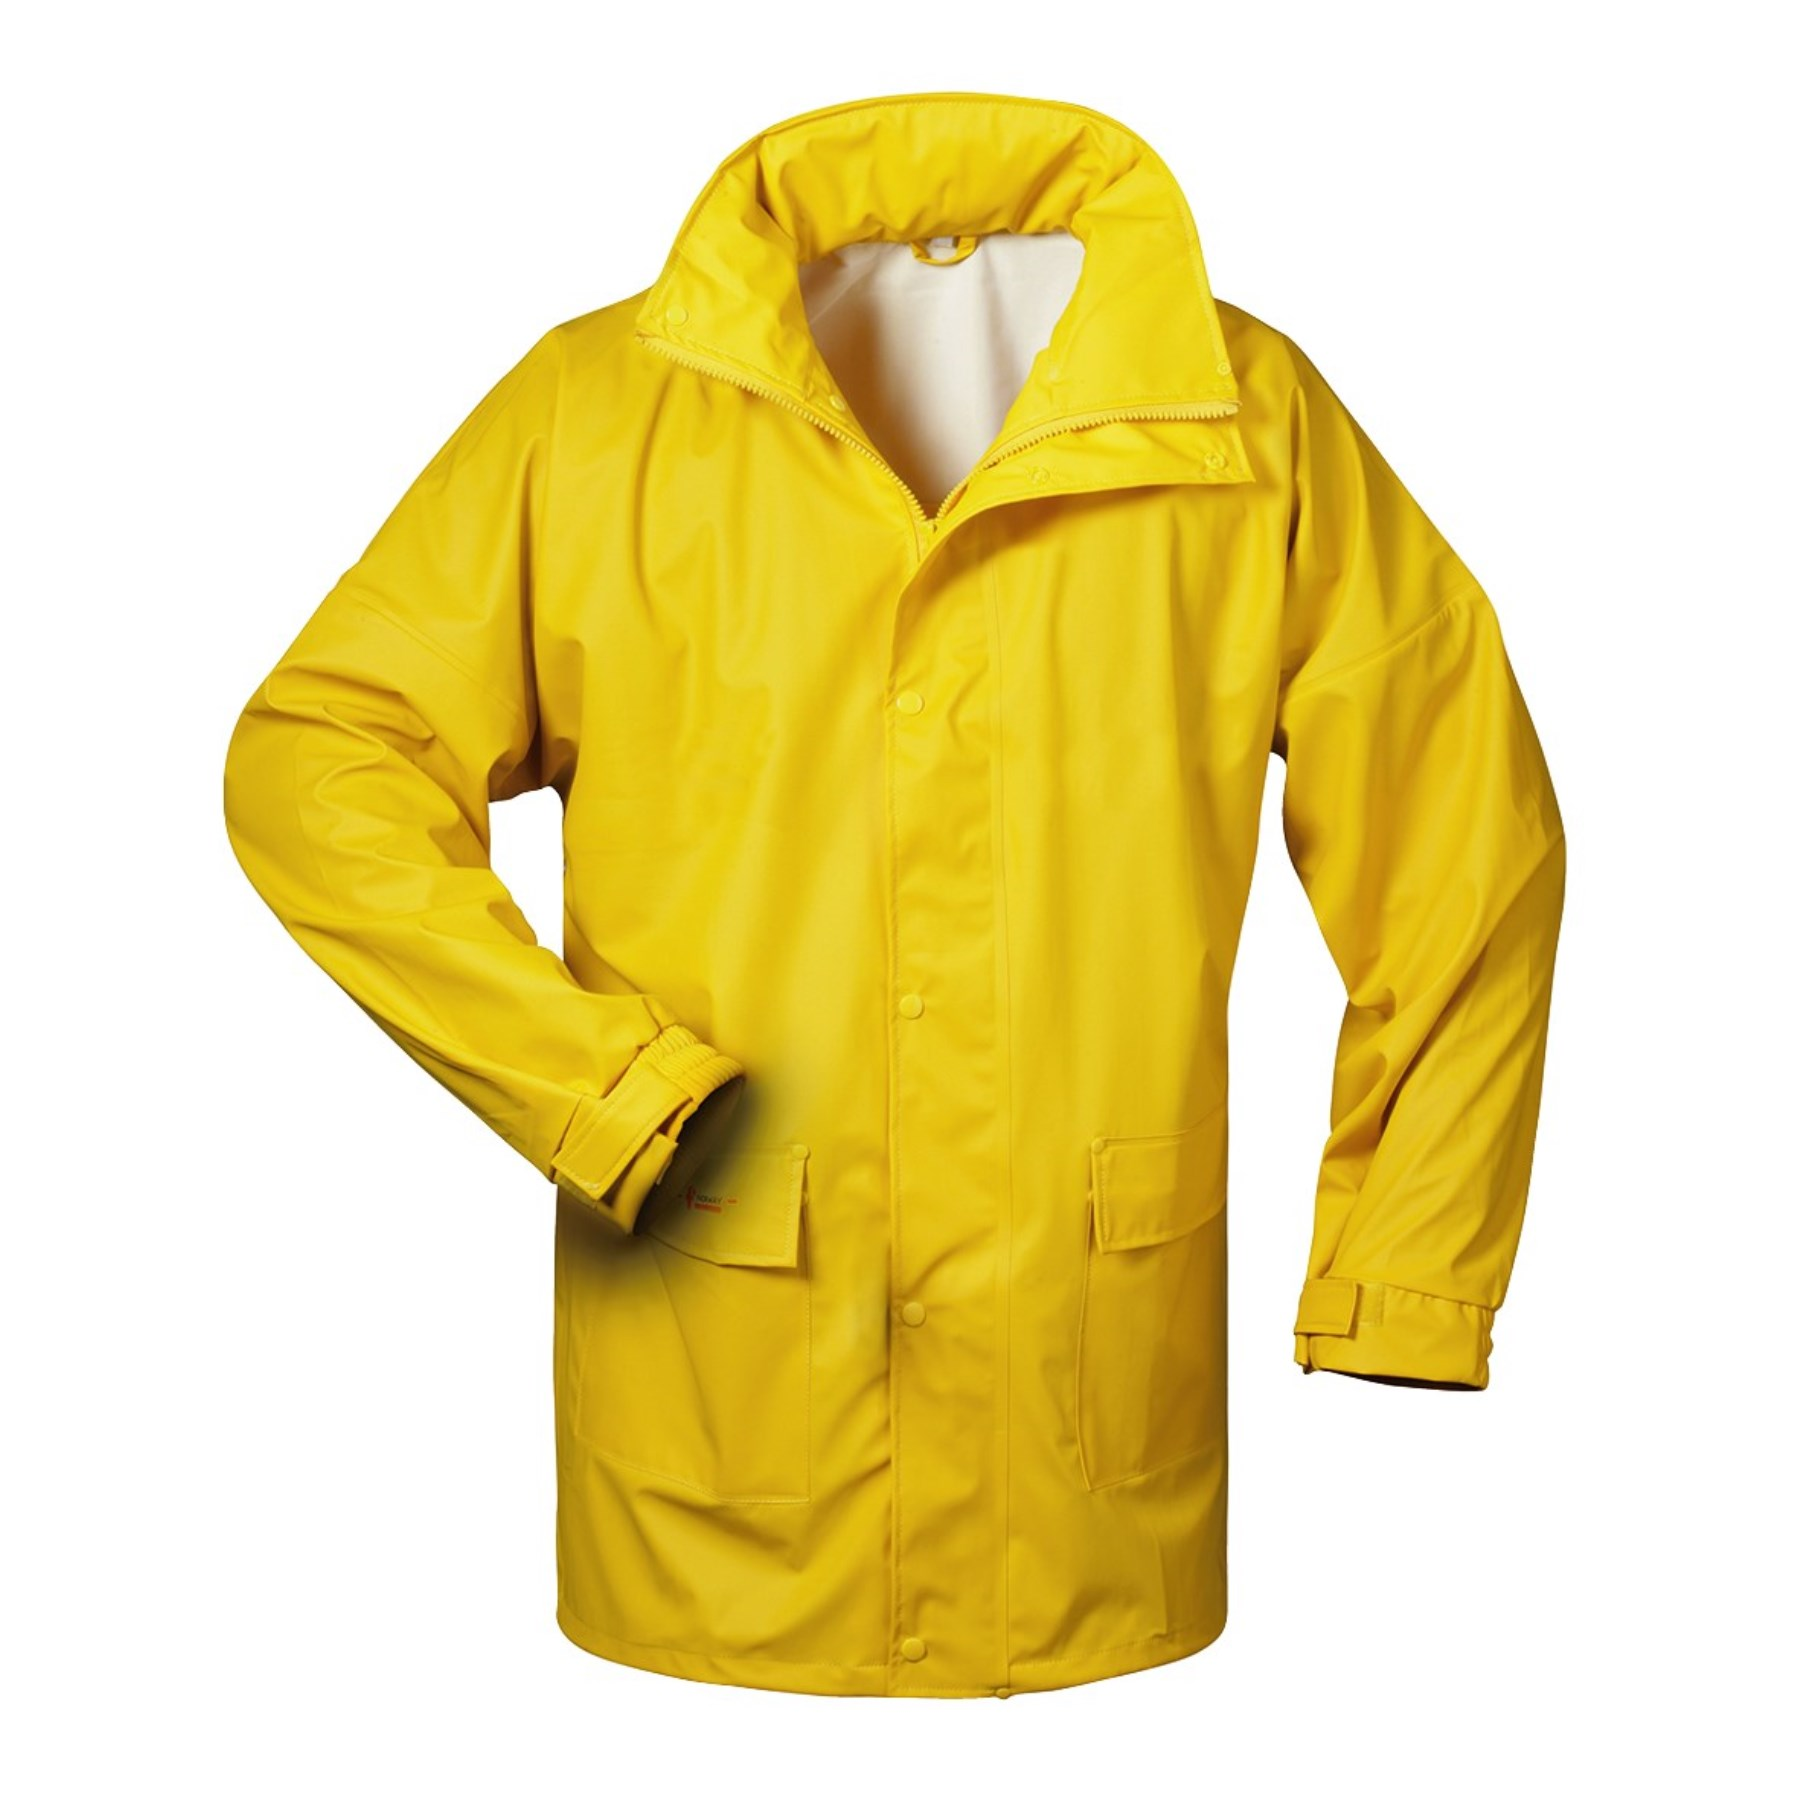 1223589 - Regenjacke PU-Stretch